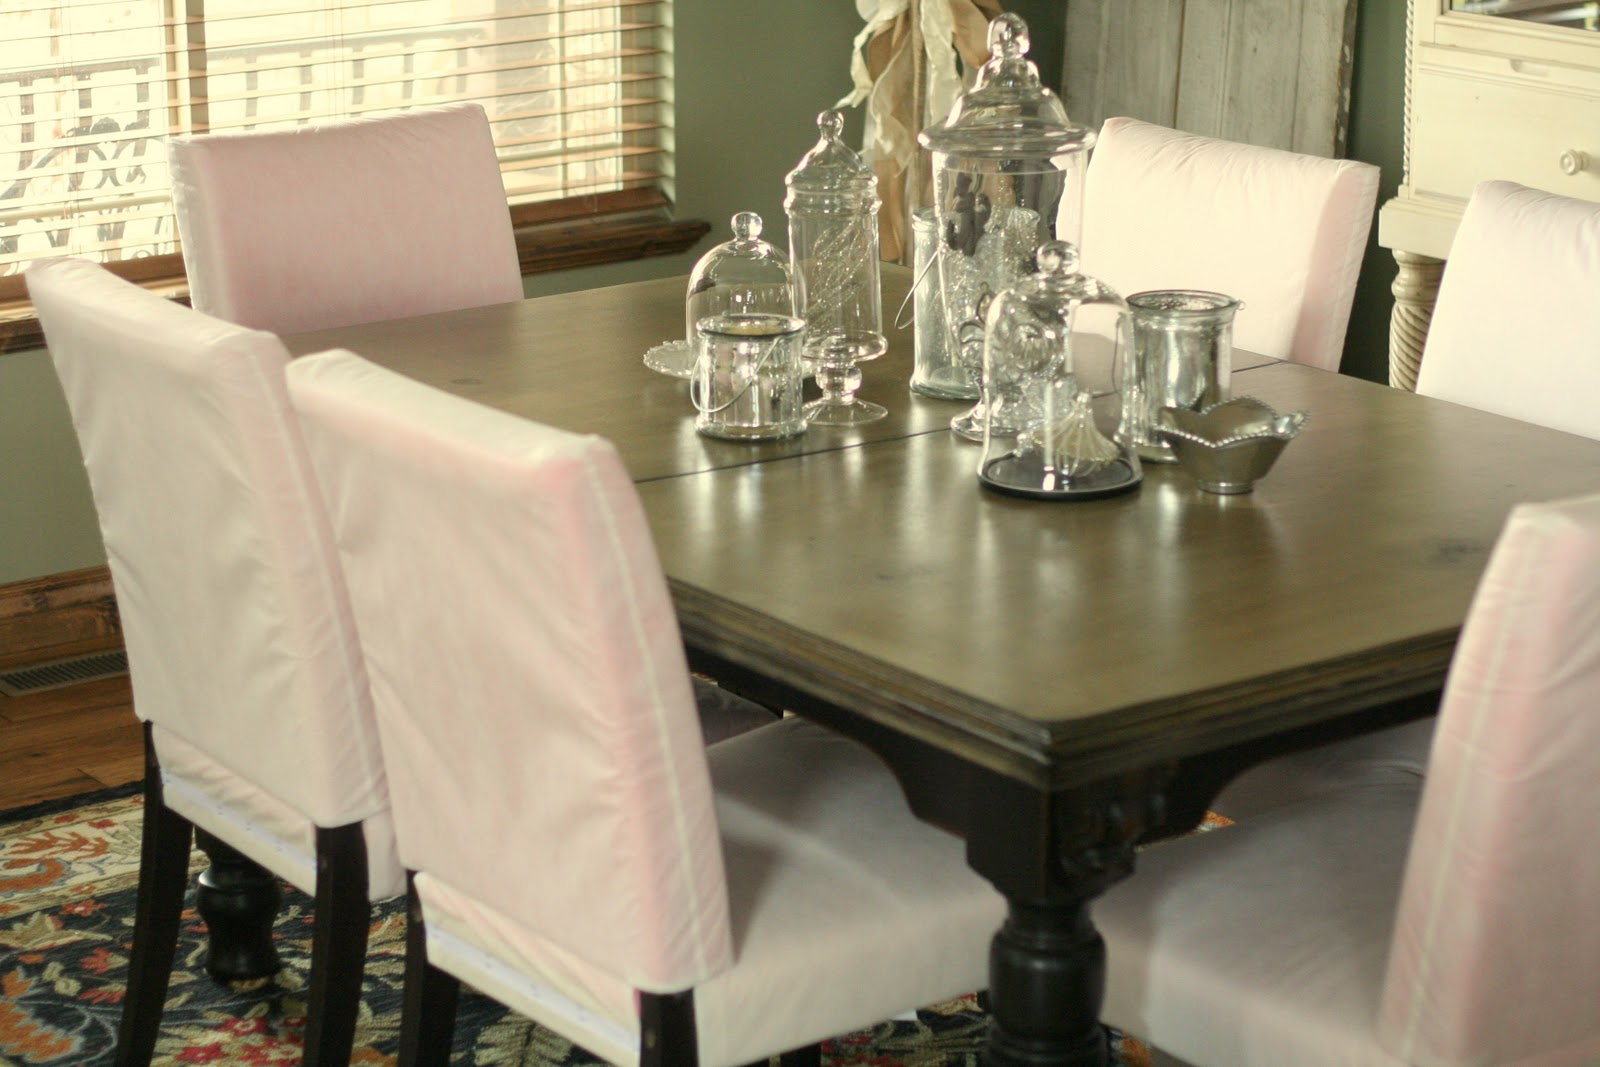 Elegant Slipcover for Dining Room Chairs – Stylish Look | HomesFeed